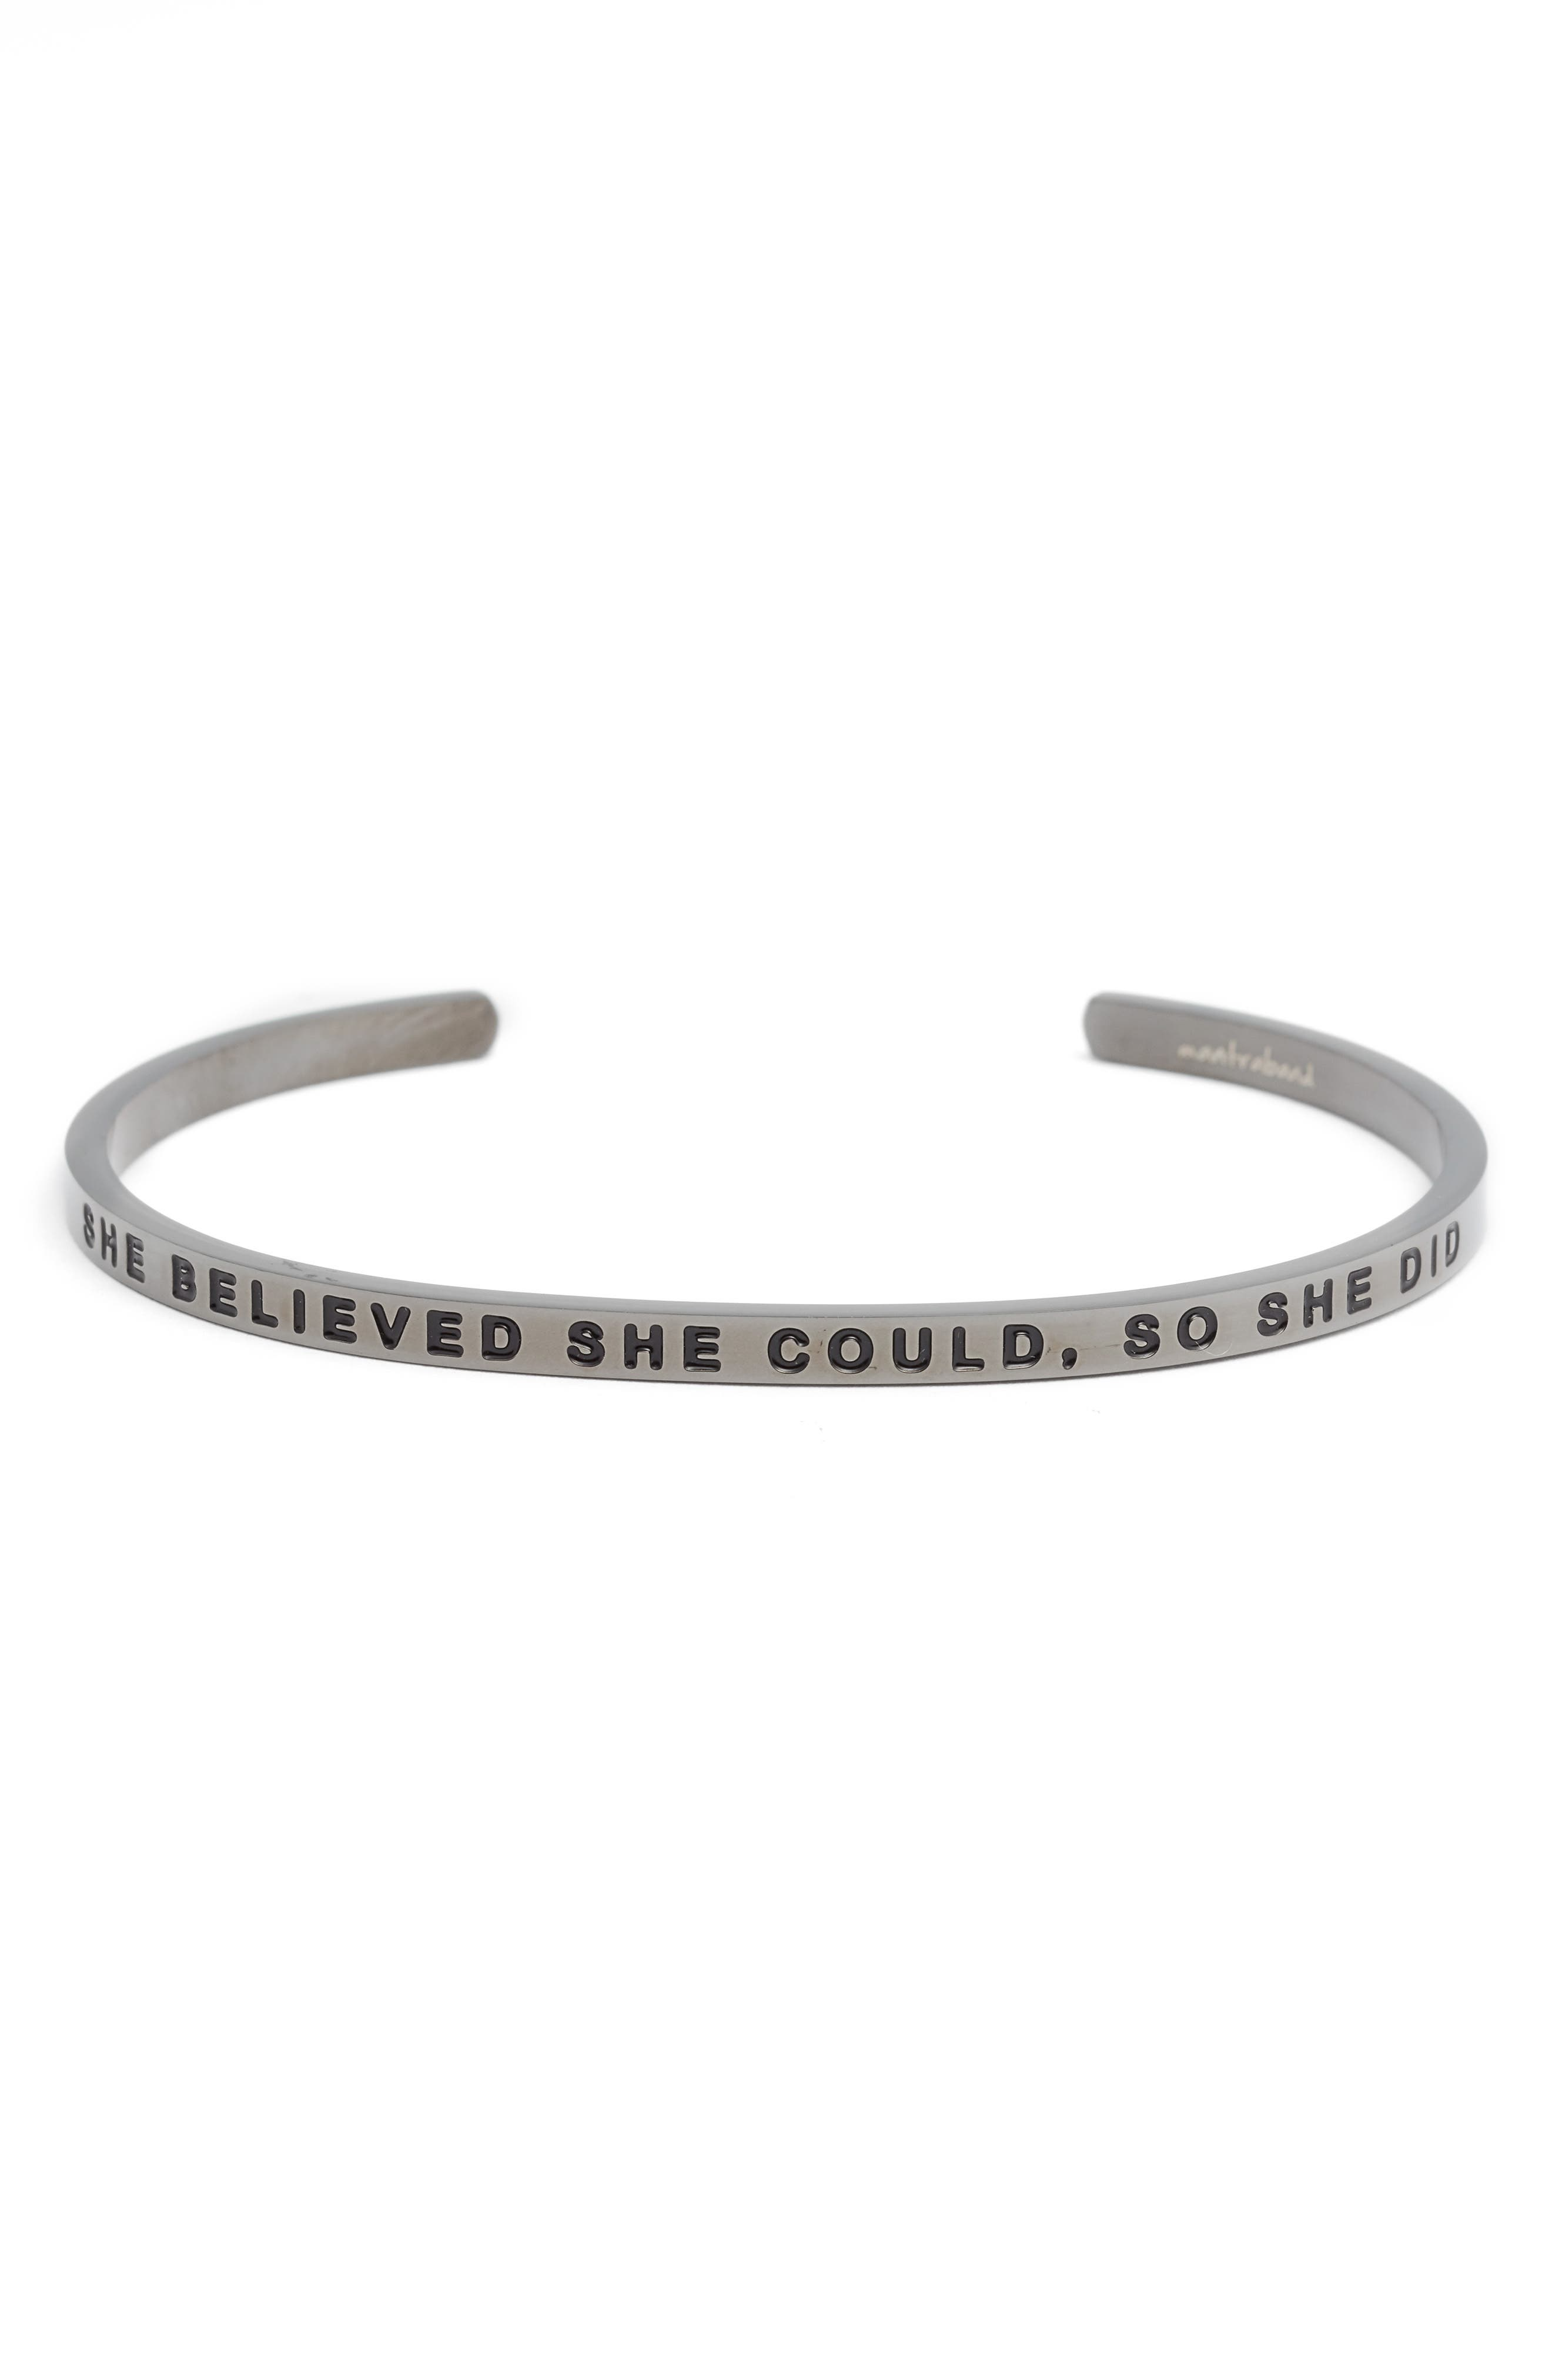 'She Believed She Could' Cuff,                             Main thumbnail 1, color,                             MOON GRAY